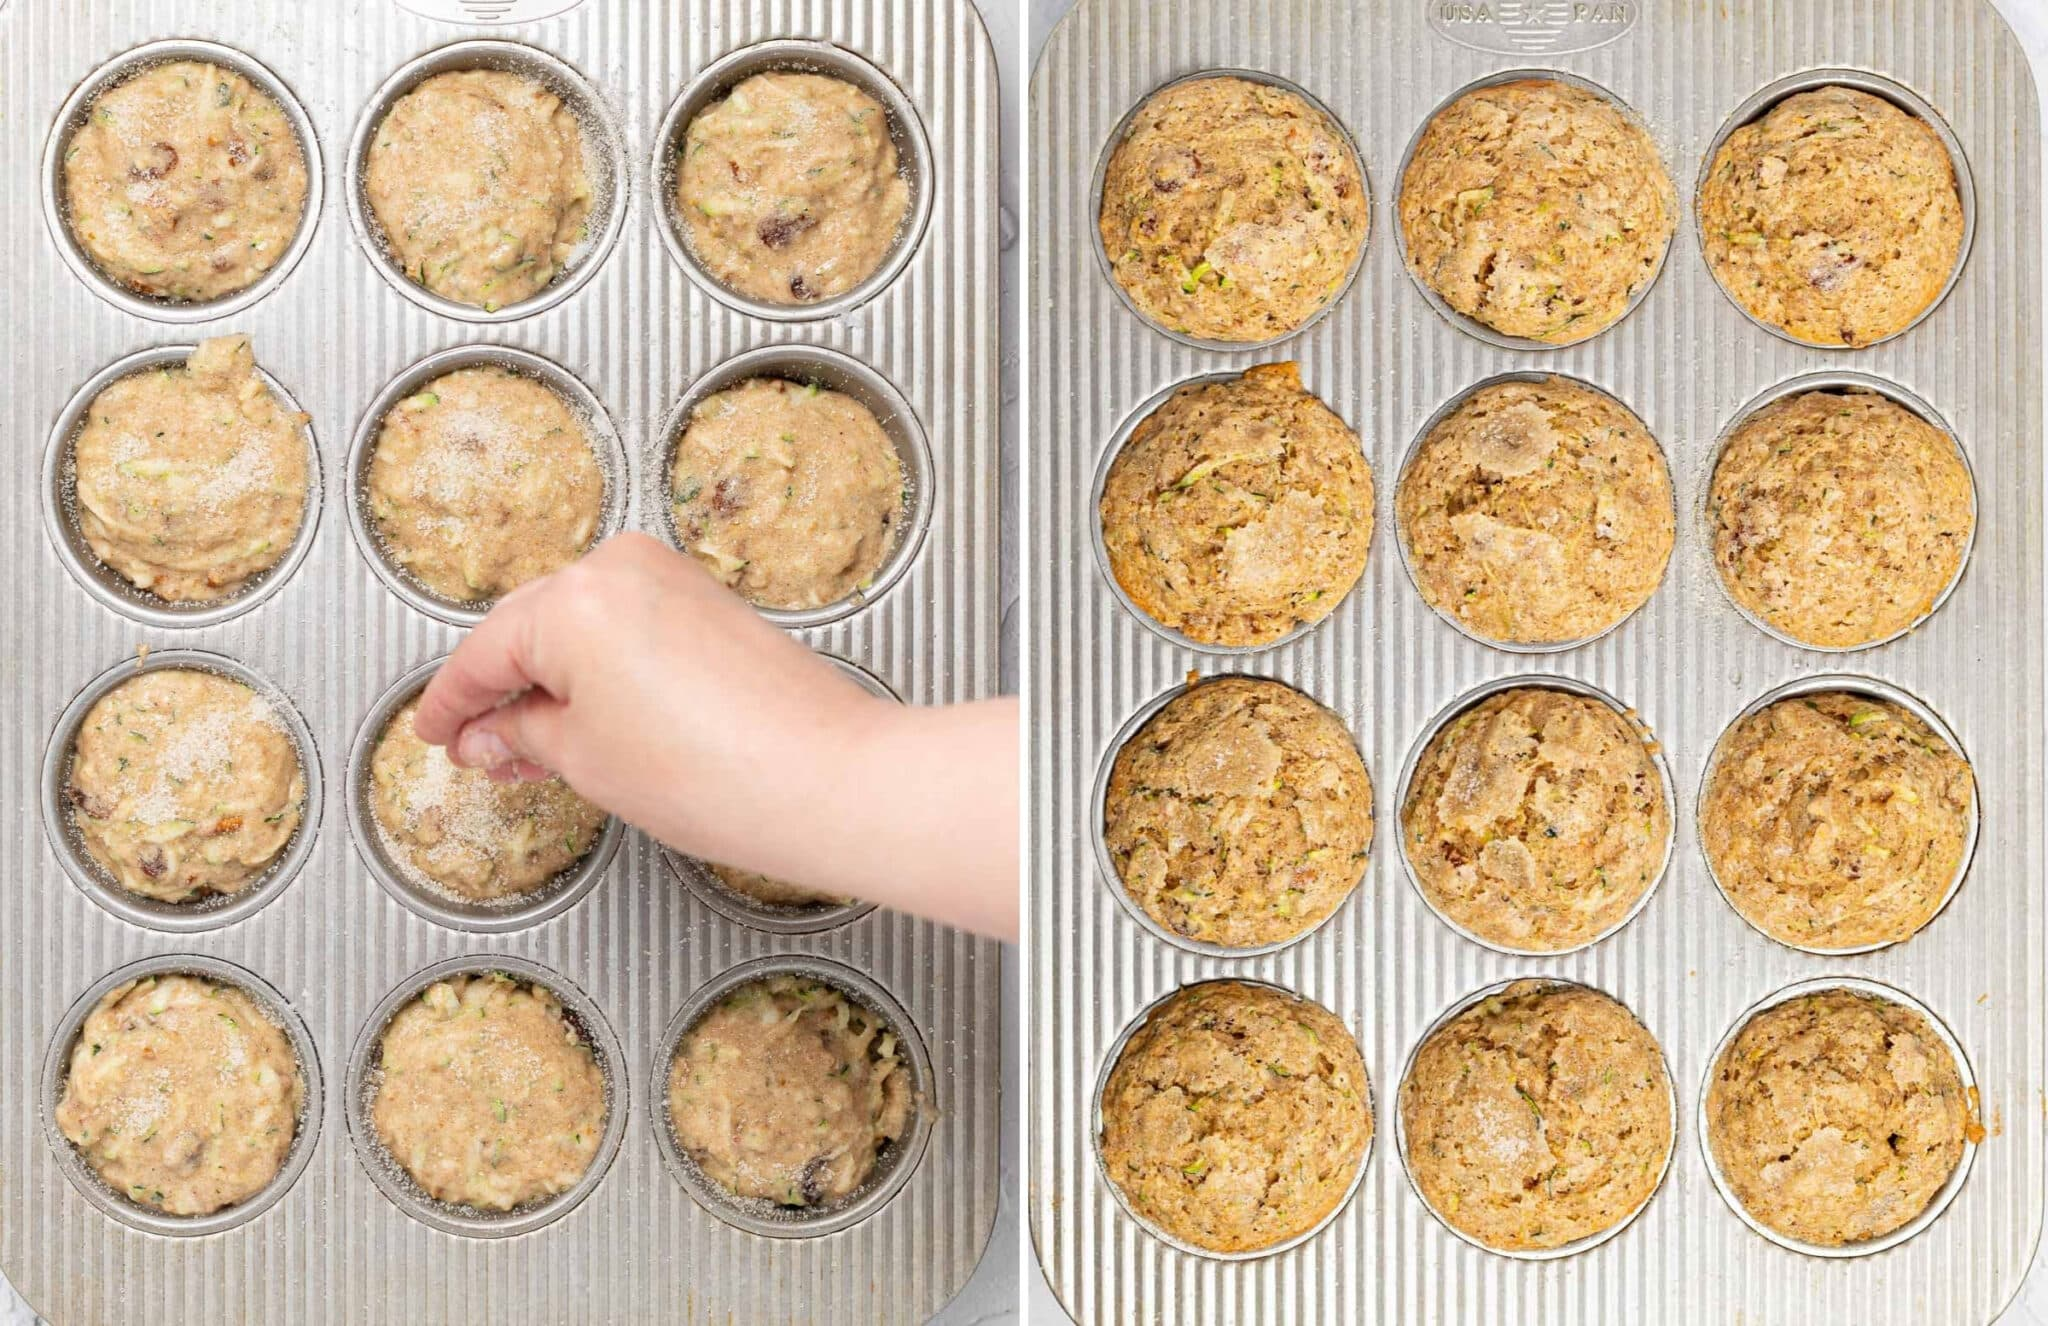 muffins before and after cooking